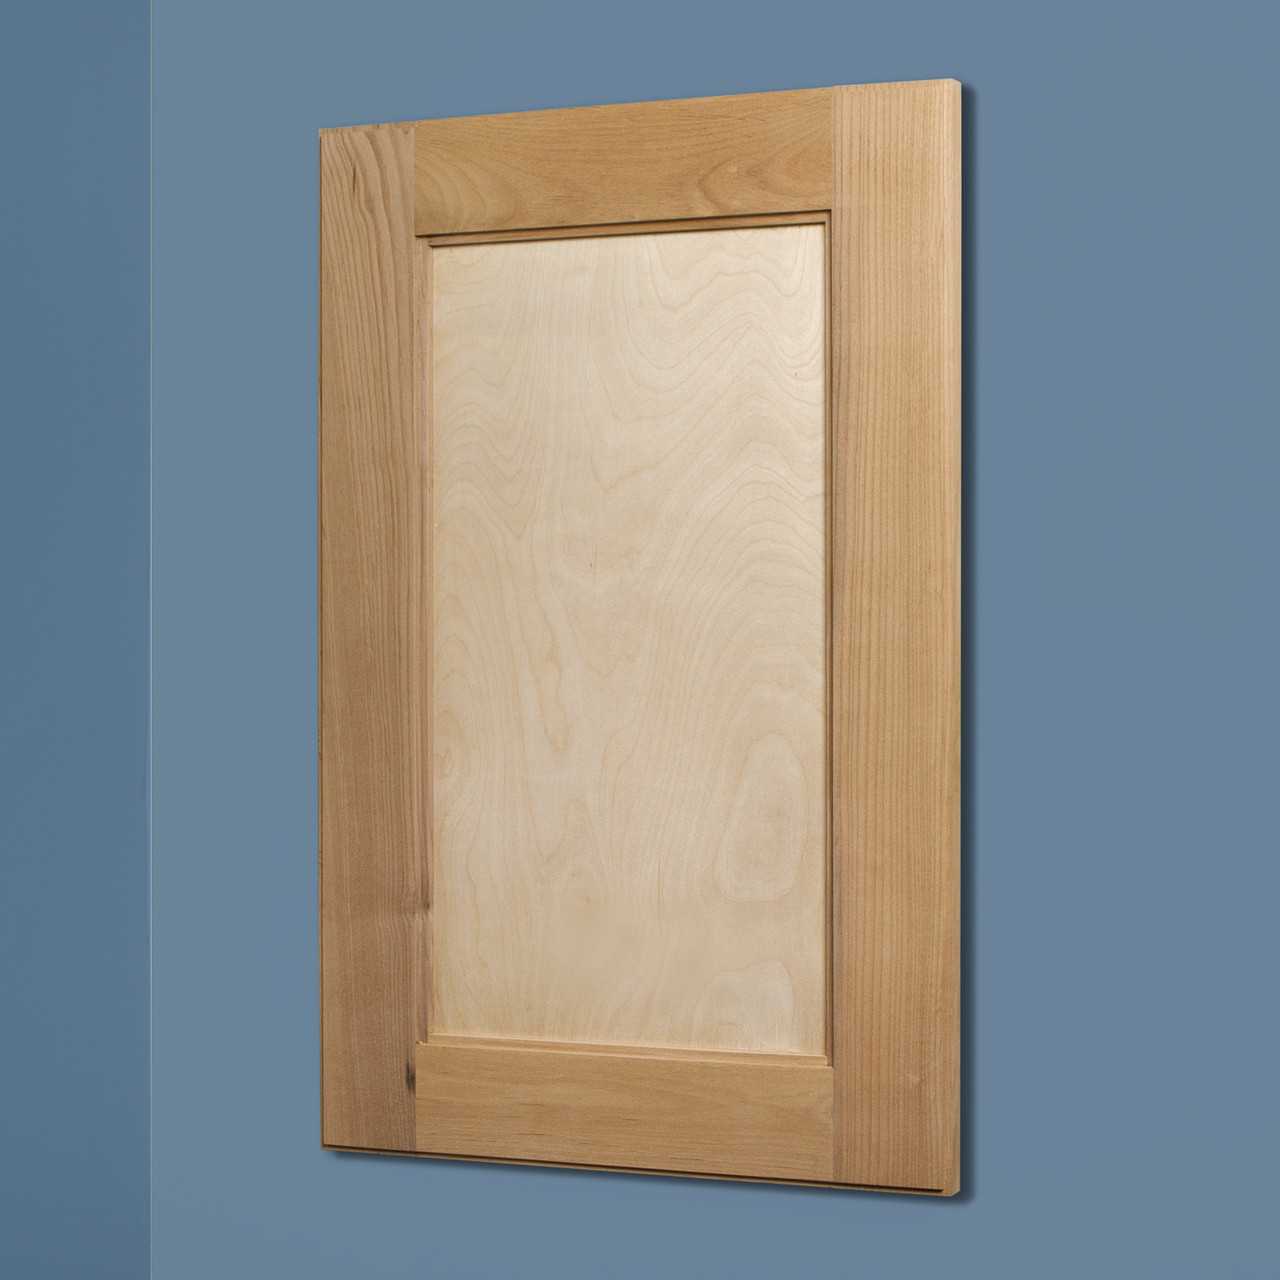 Unfinished Shaker Style Recessed Medicine Cabinet 14x24 Recessed